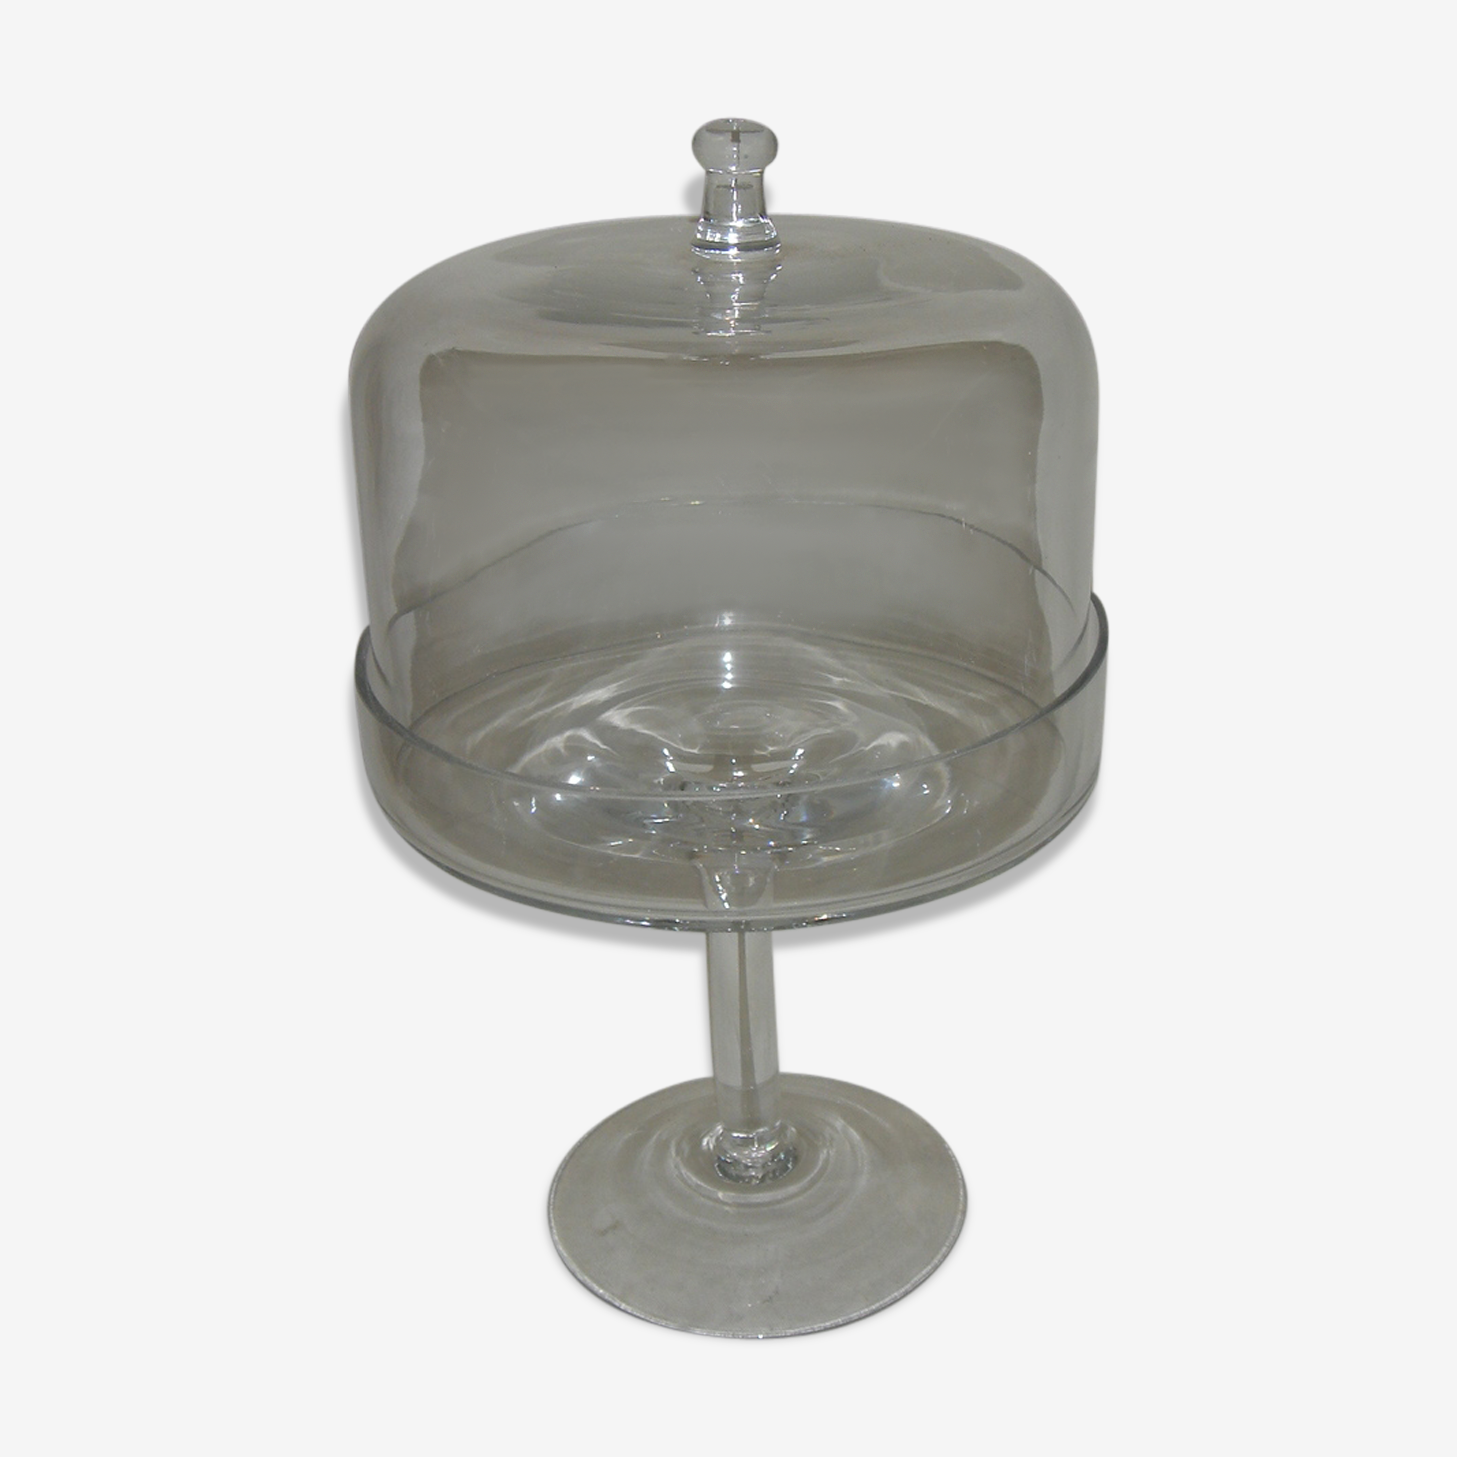 glass Bell with support for cakes, circa 1980